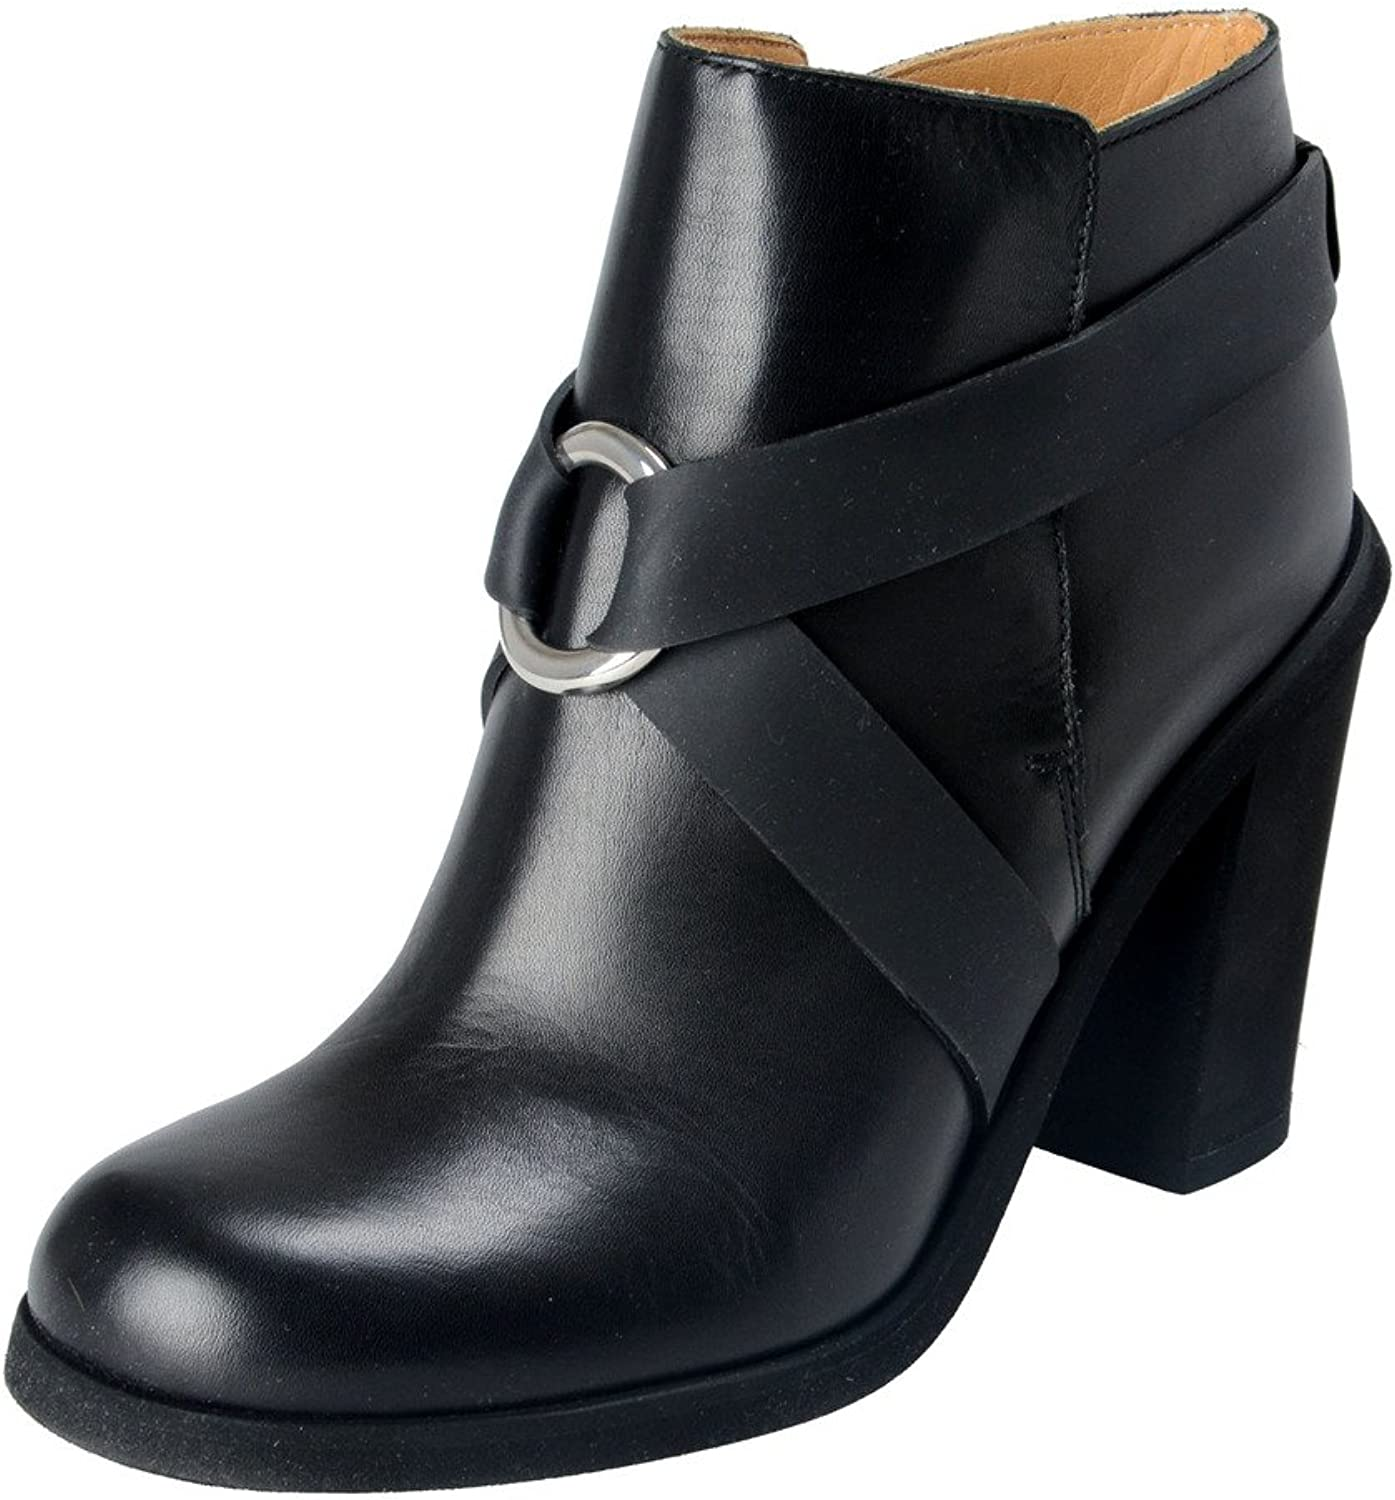 MAISON MARGIELA MM6 Women's Black Leather Heeled Ankle Boots shoes